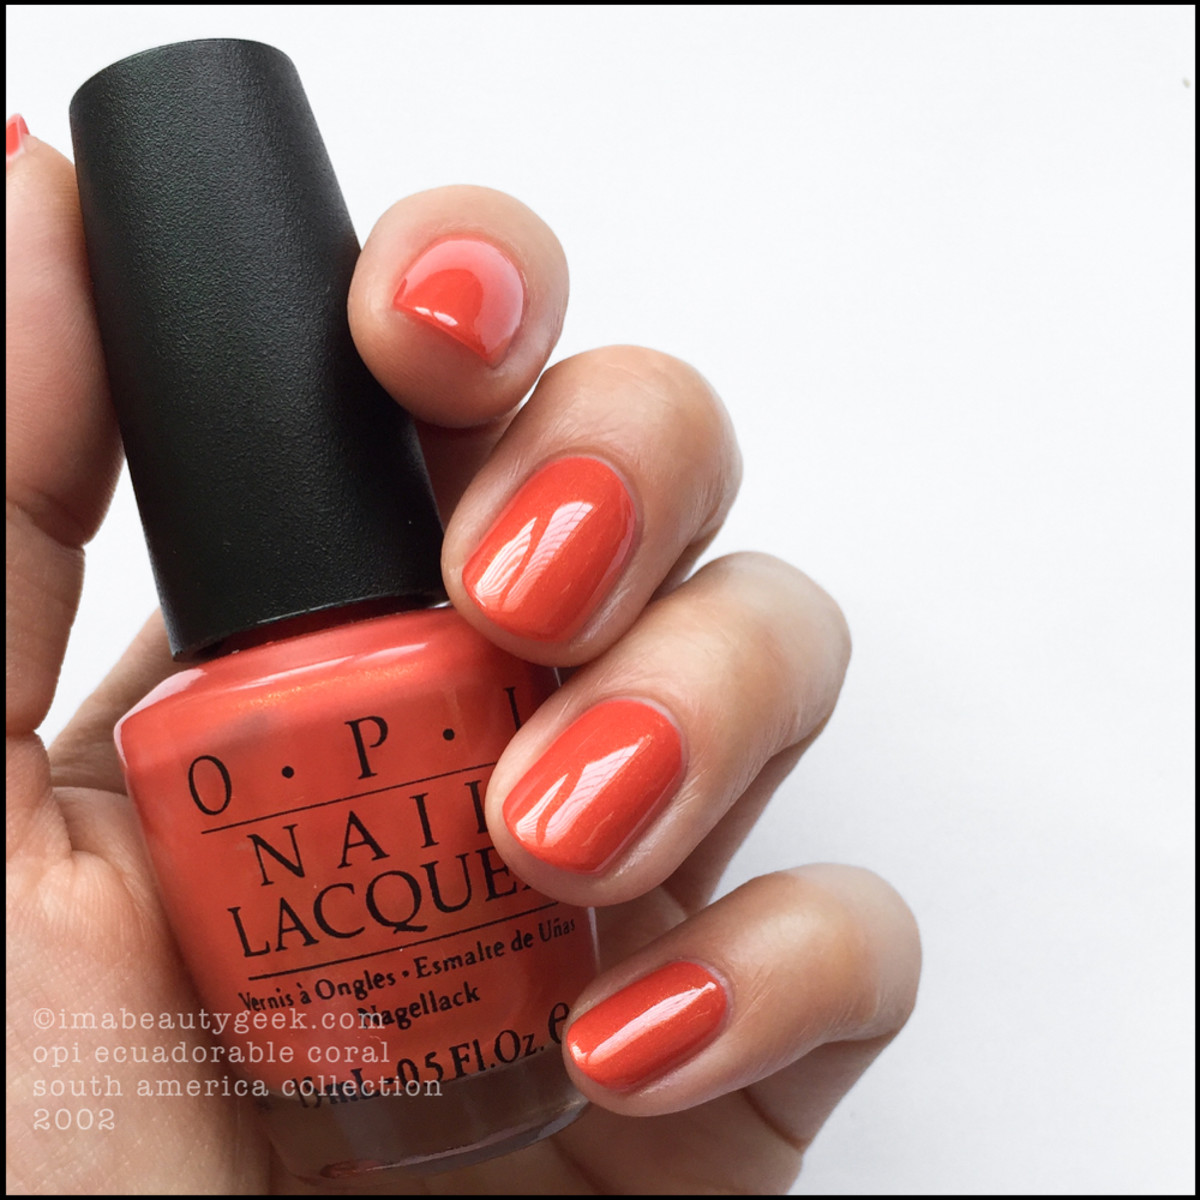 OPI Ecuadorable Coral 2002_OPI South America Collection 2002